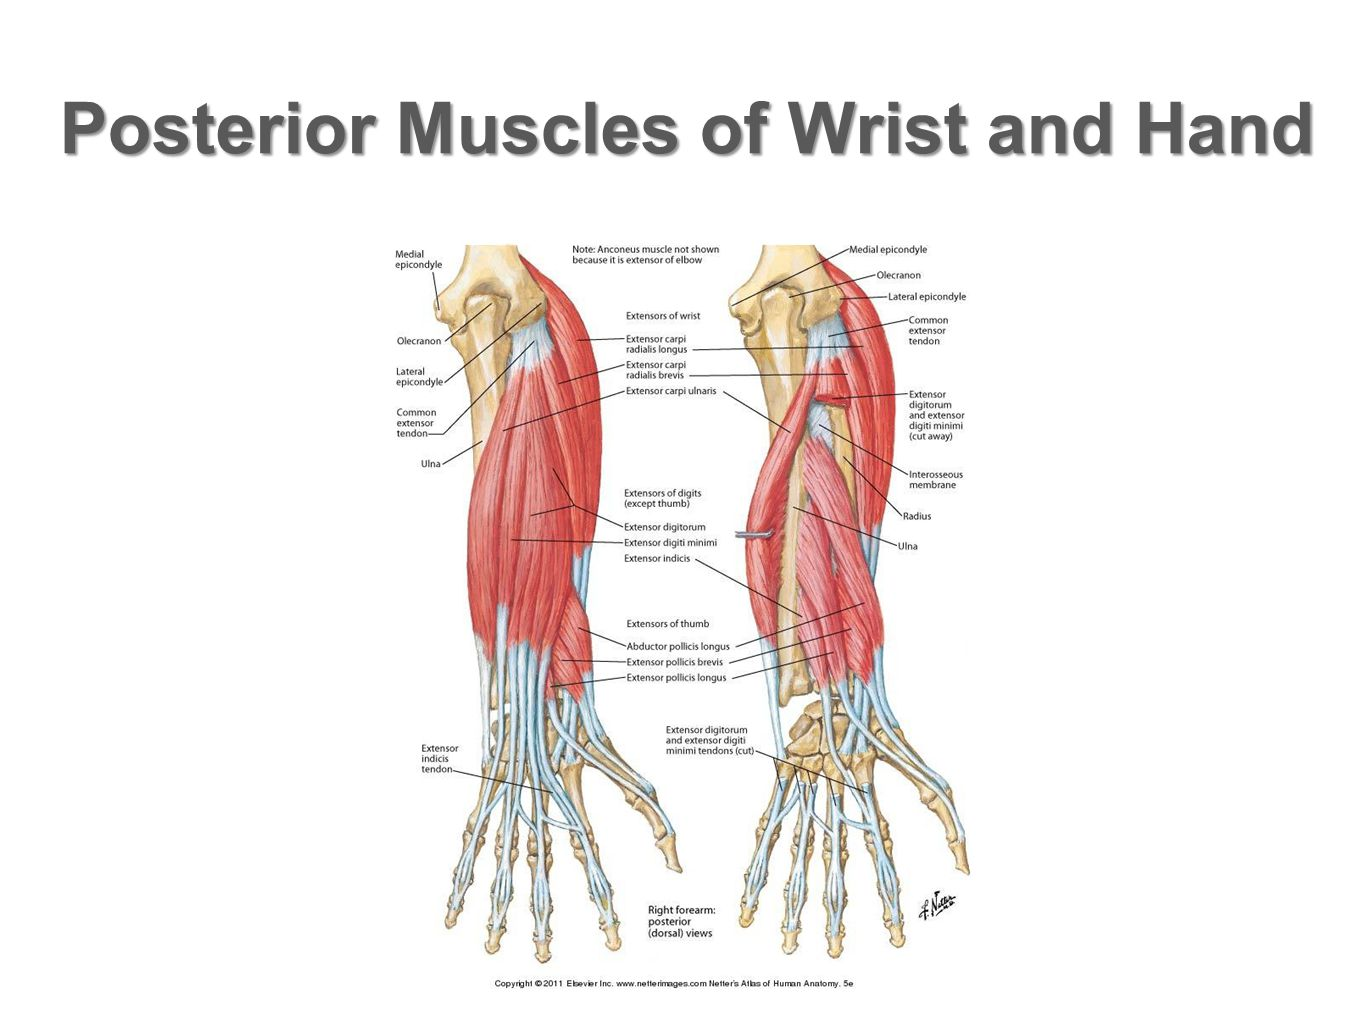 Hand anatomy extensor tendons 2632441 - follow4more.info